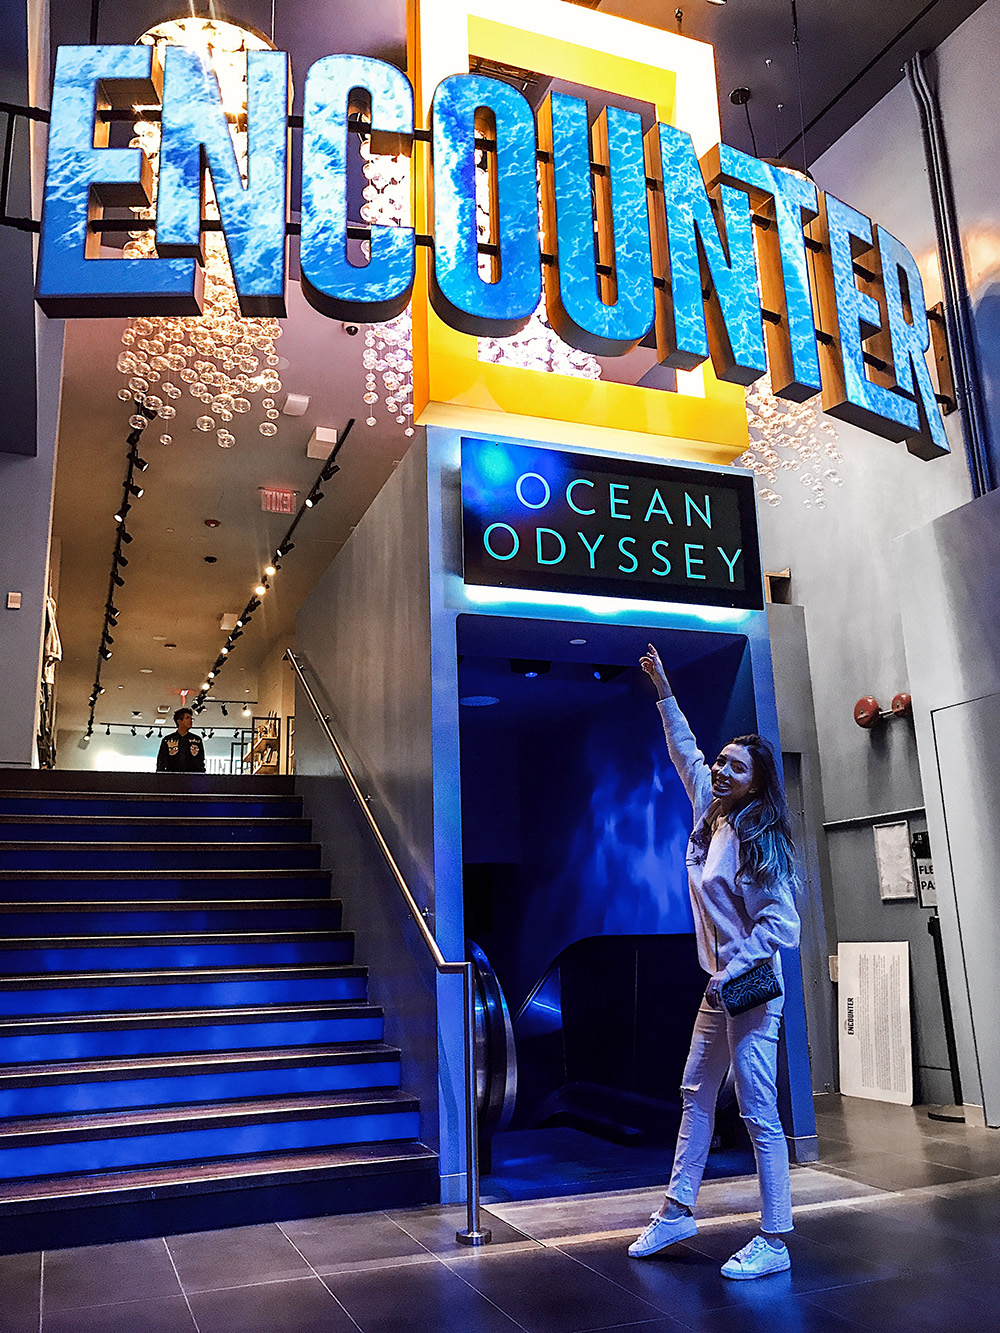 National Geographic Encounter: Ocean Odyssey review. By New York City Blogger Ulia Ali Pillmore.